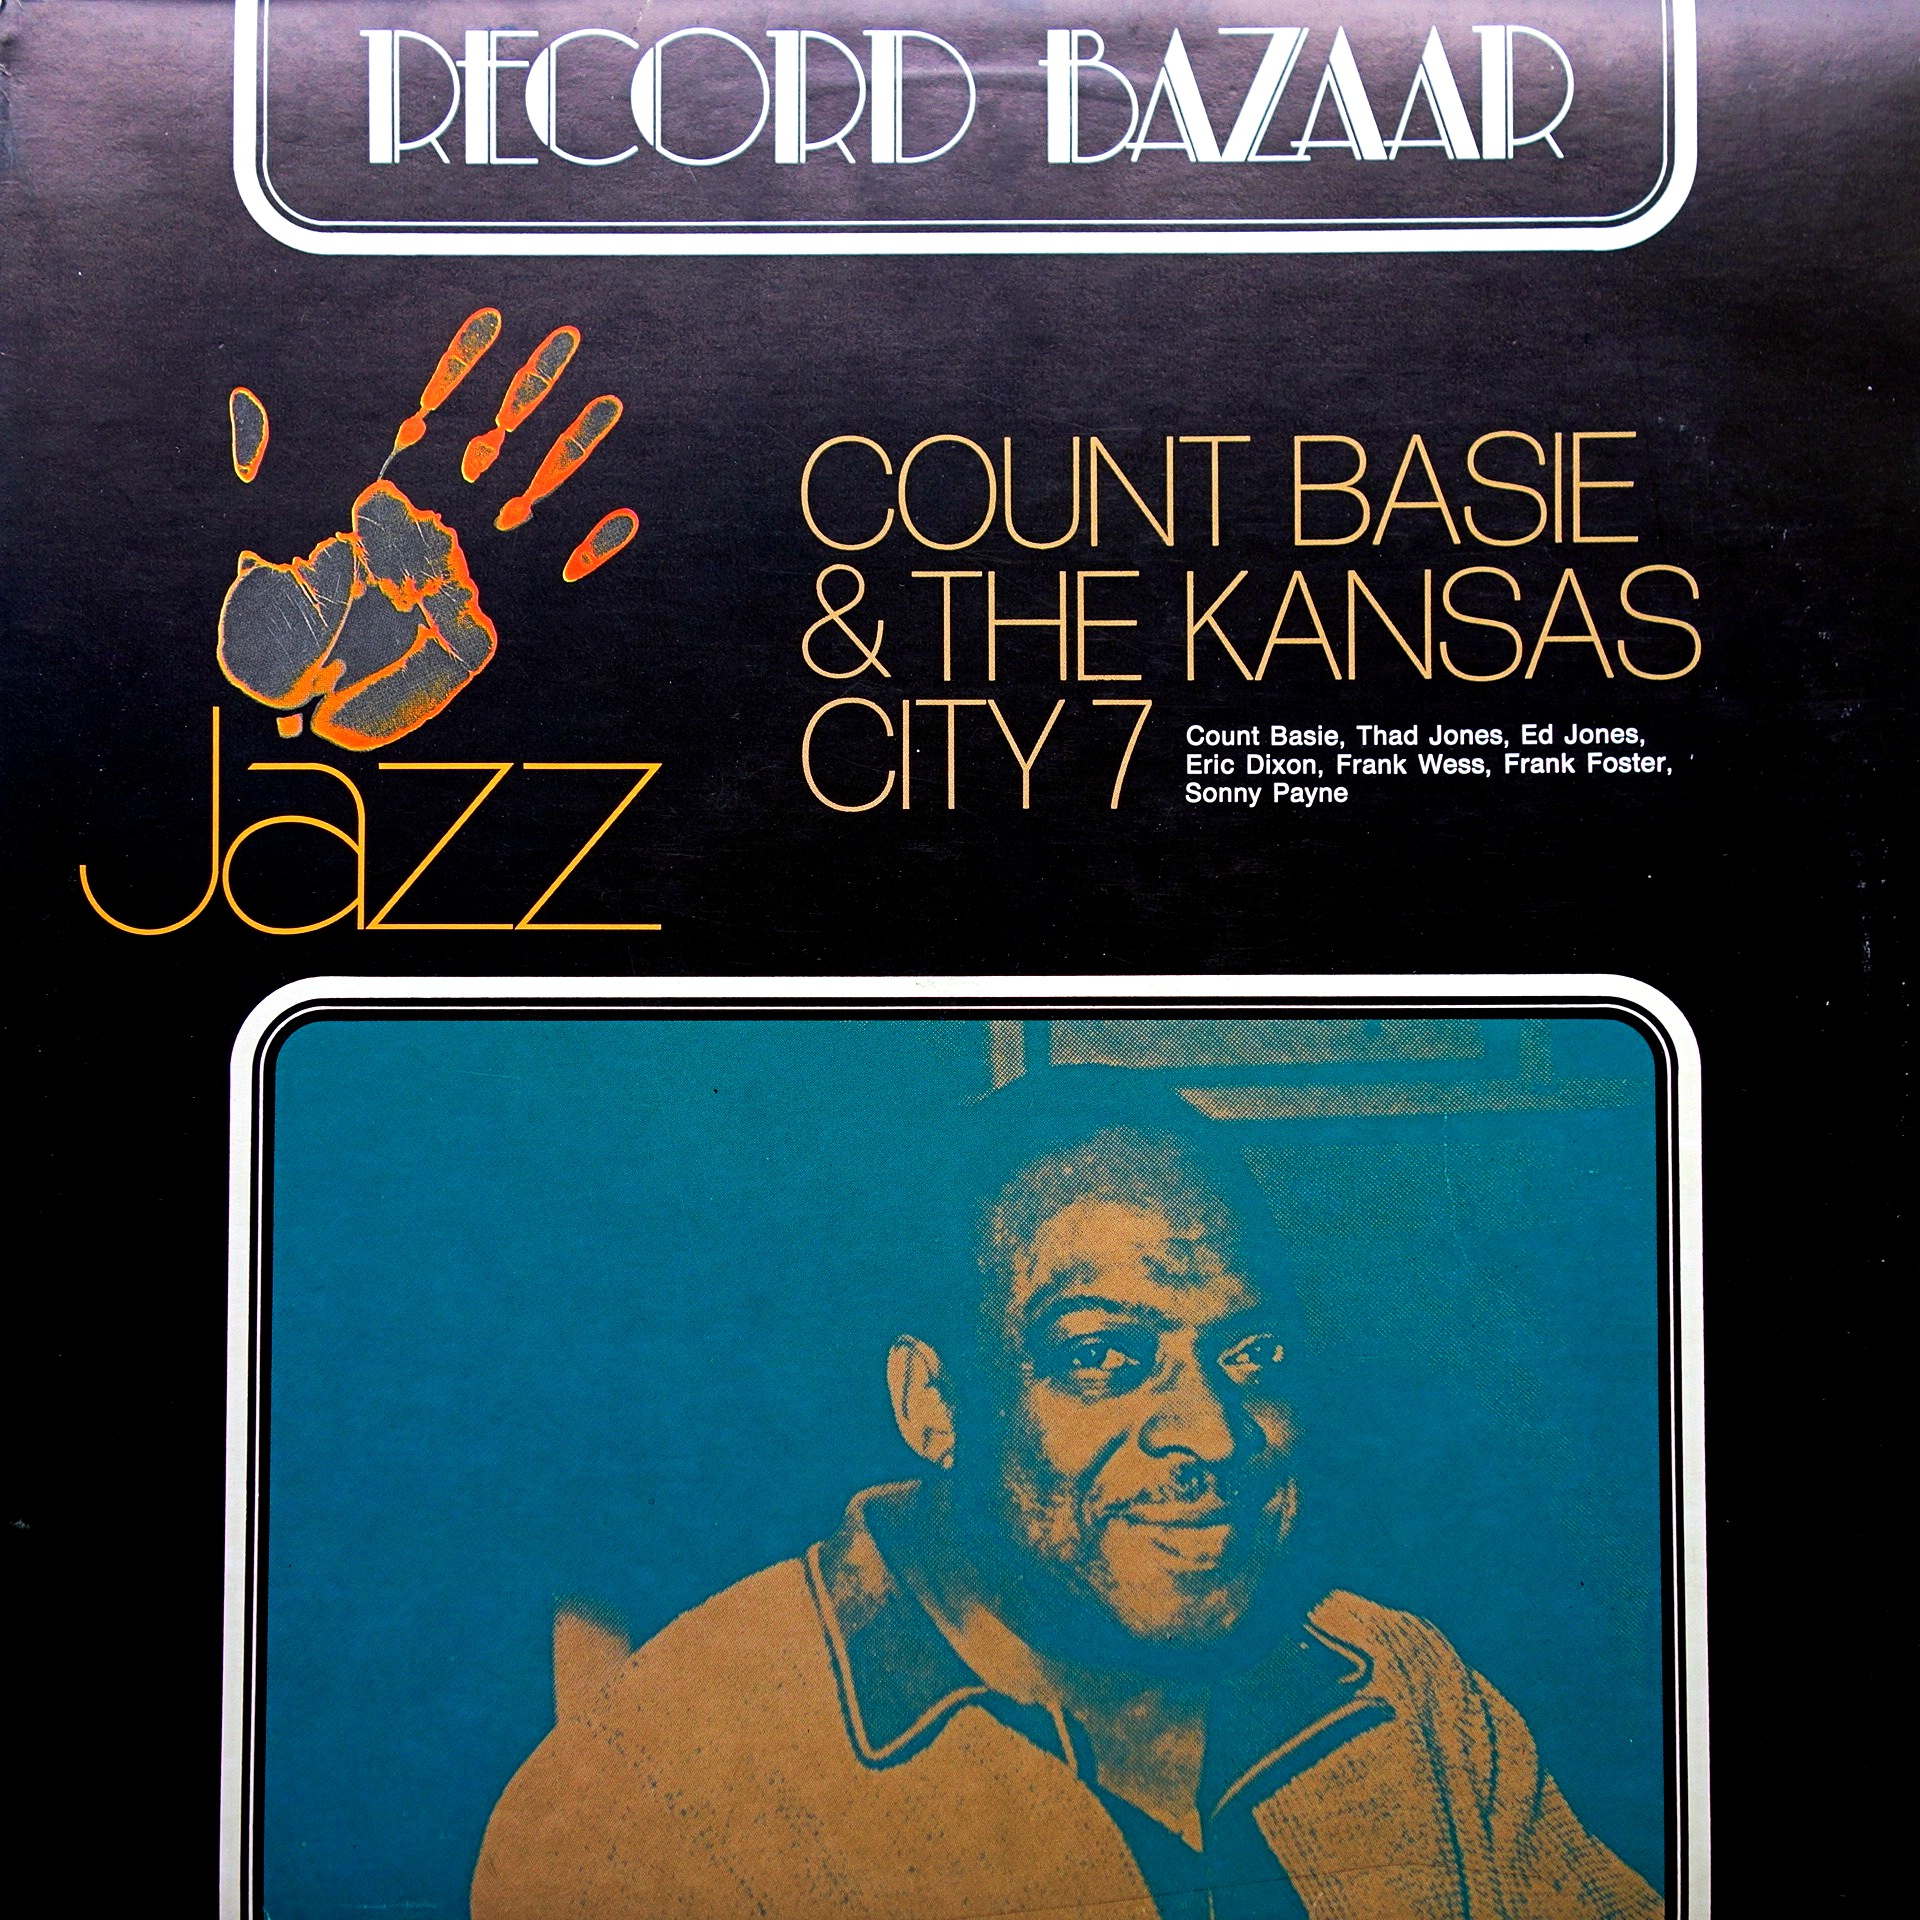 LP Count Basie ‎– Count Basie And Kansas City 7